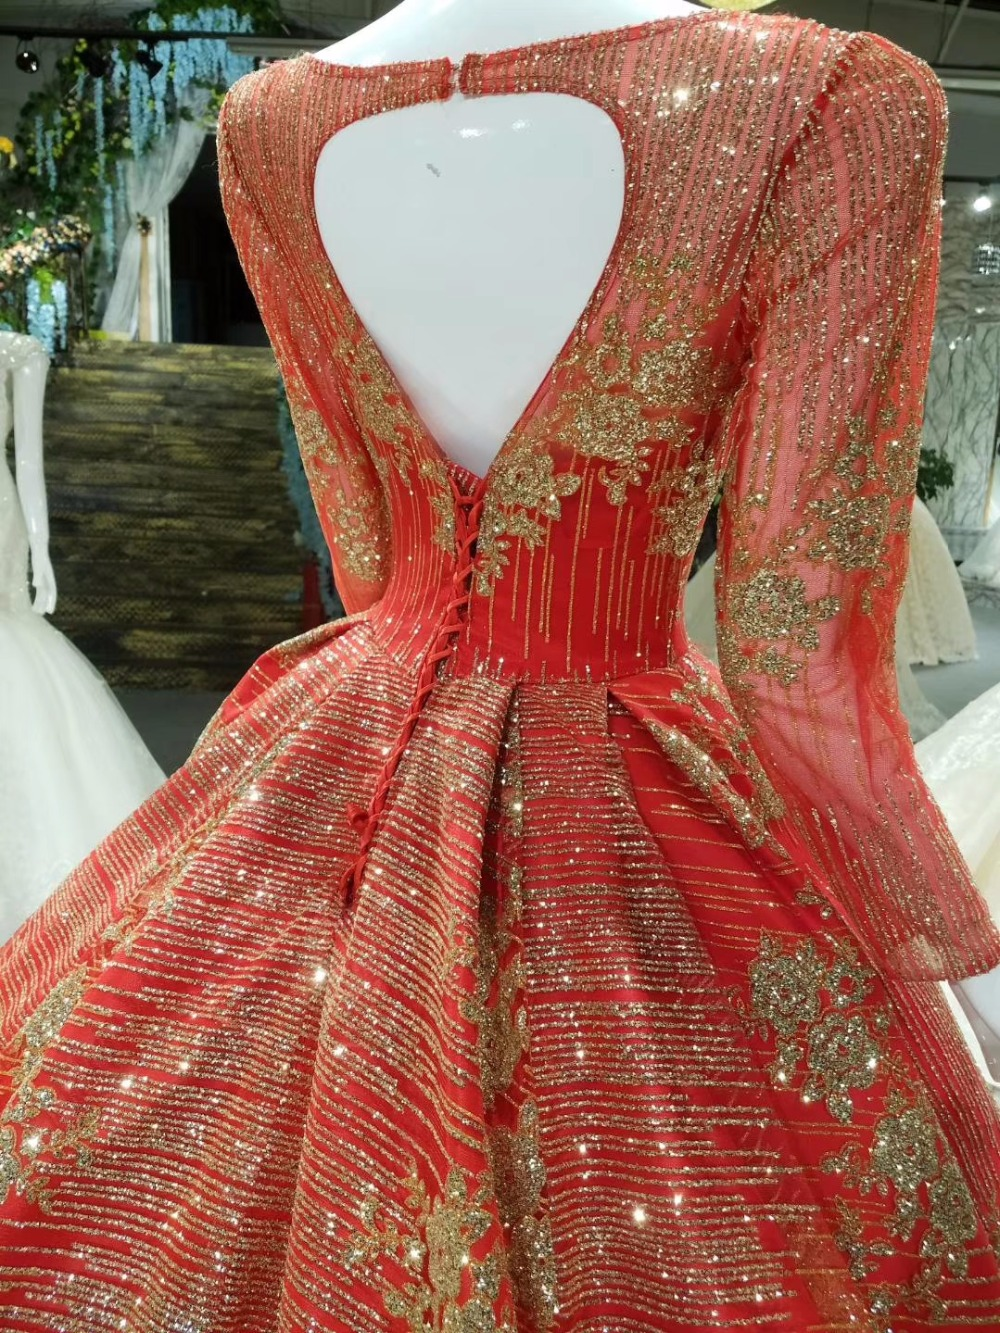 AOLANES Luxury Lace Crystals Appliques Arabic Champagne Gold Wedding Dresses Red Gold Bridal Gown 2018 Long Train Bridal Dresses in Wedding Dresses from Weddings Events